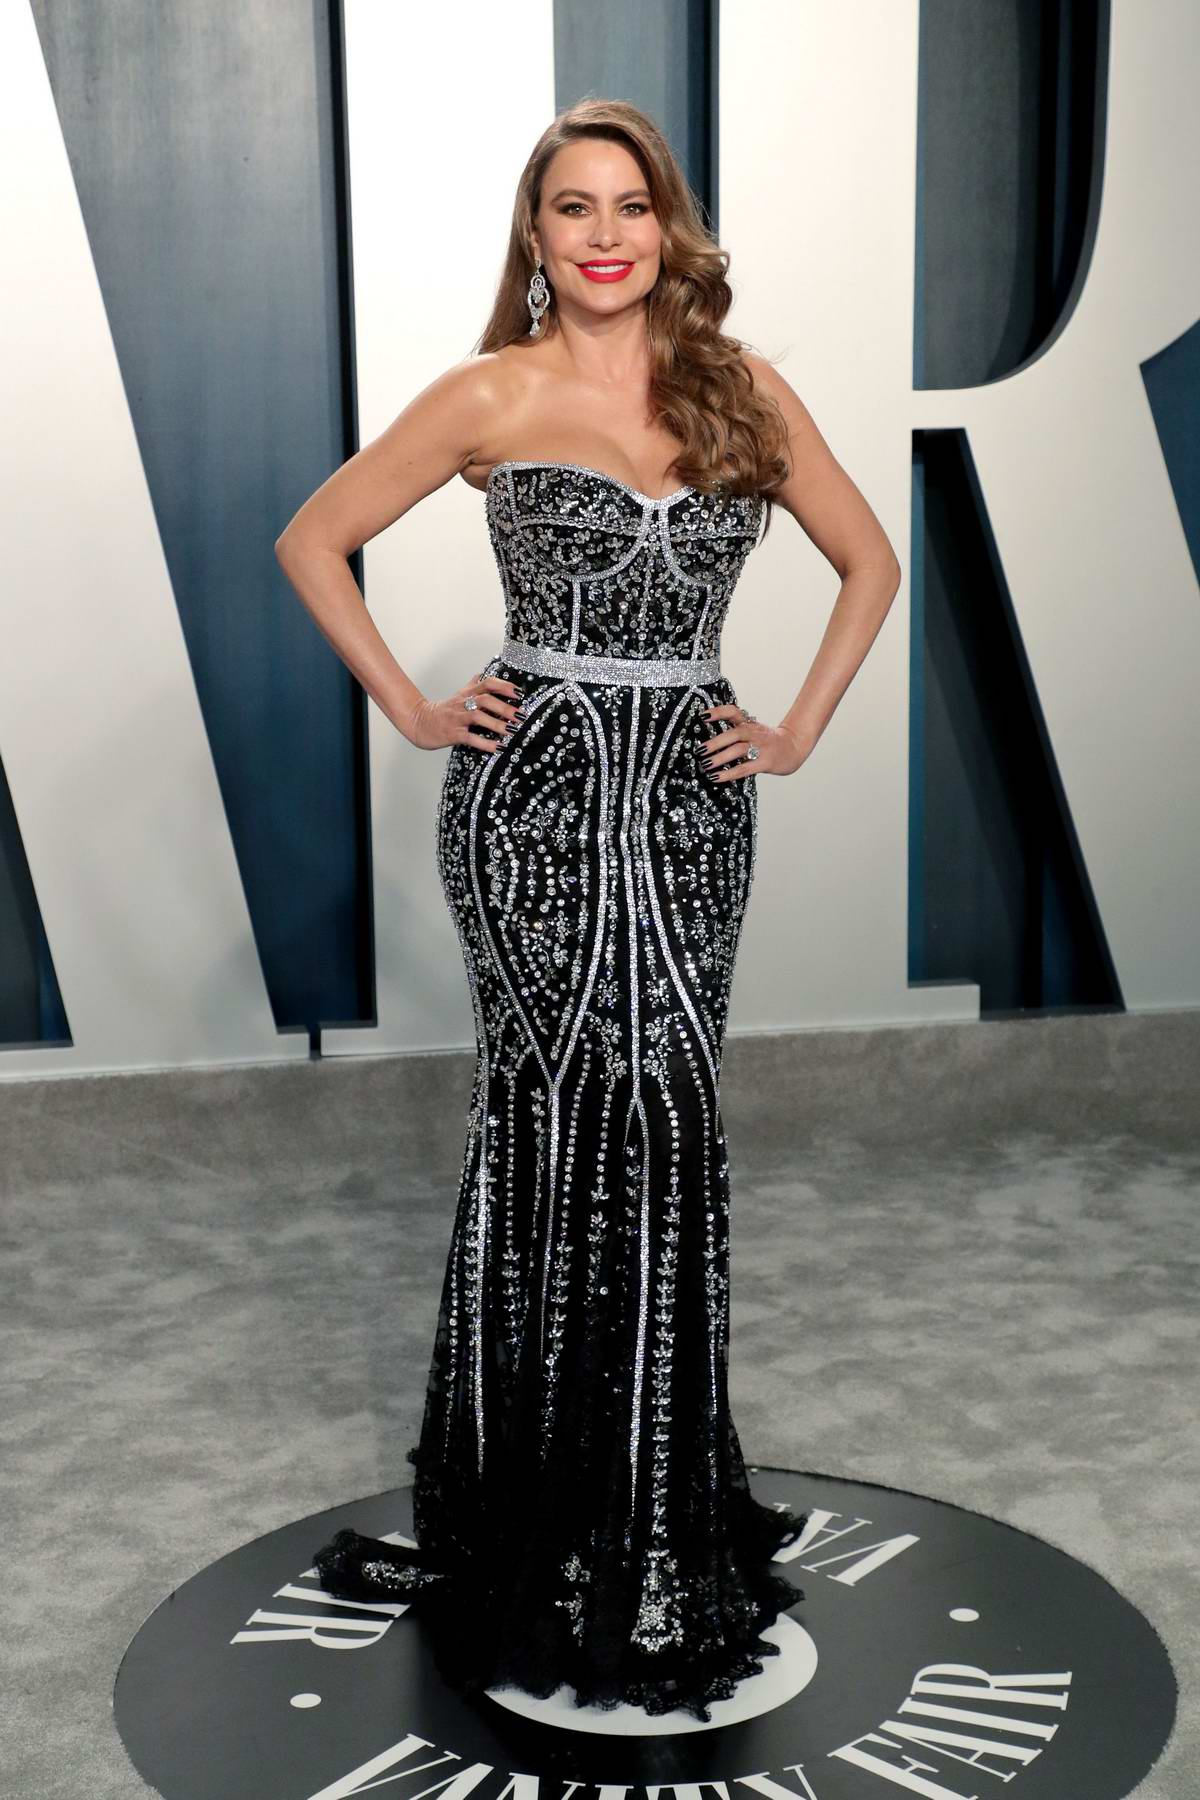 Sofia Vergara attends the 2020 Vanity Fair Oscar Party at Wallis Annenberg Center for the Performing Arts in Los Angeles